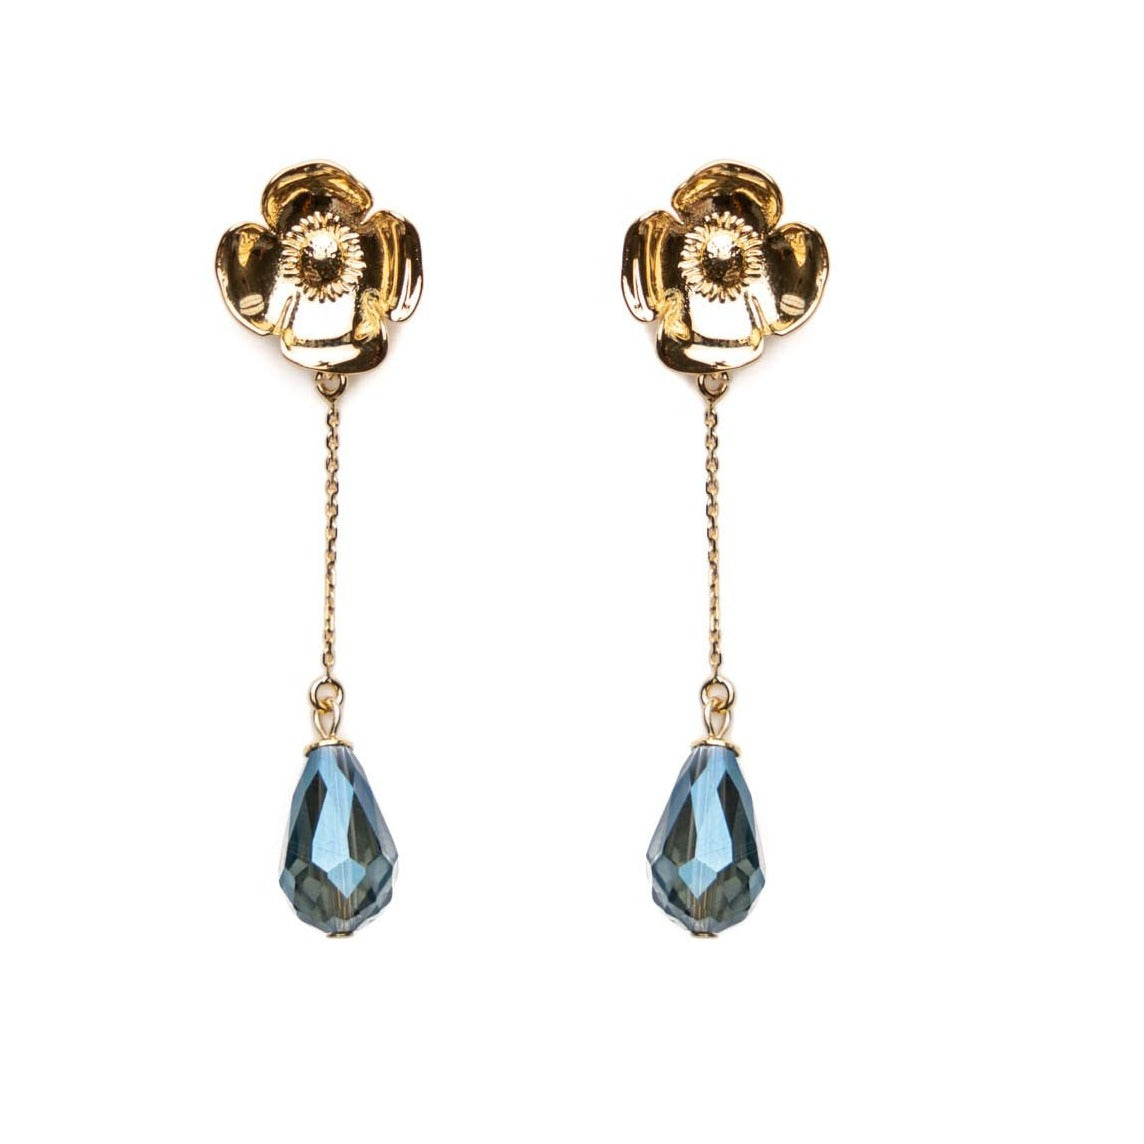 Selma long jeans earrings